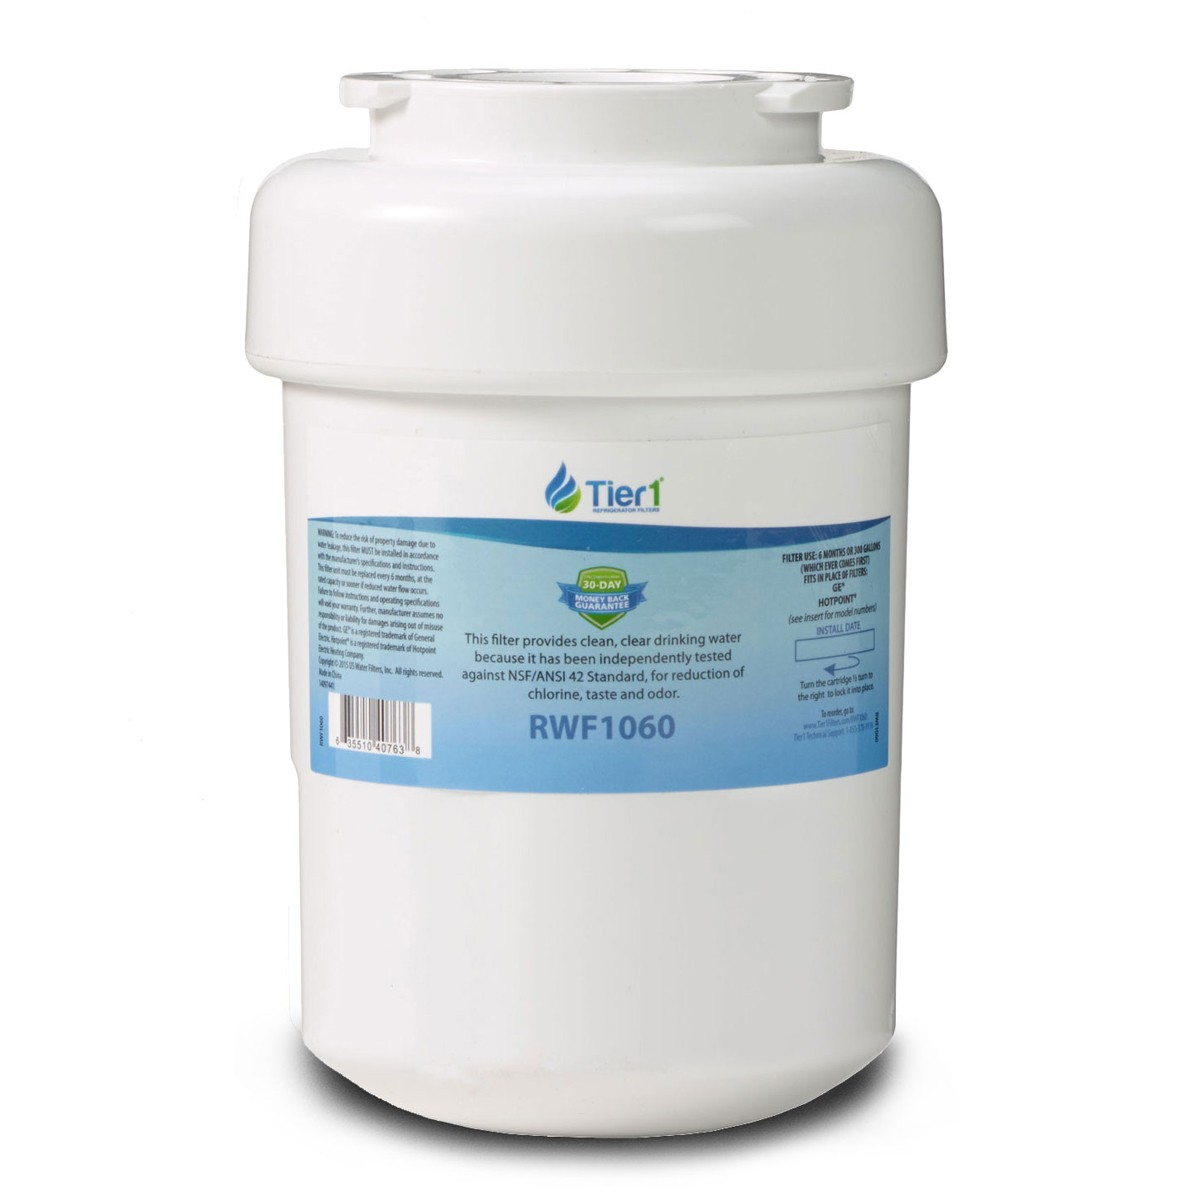 How To Replace Ge Water Filter Ge Mwf Smartwater Refrigerator Water Filter Replacement By Tier1